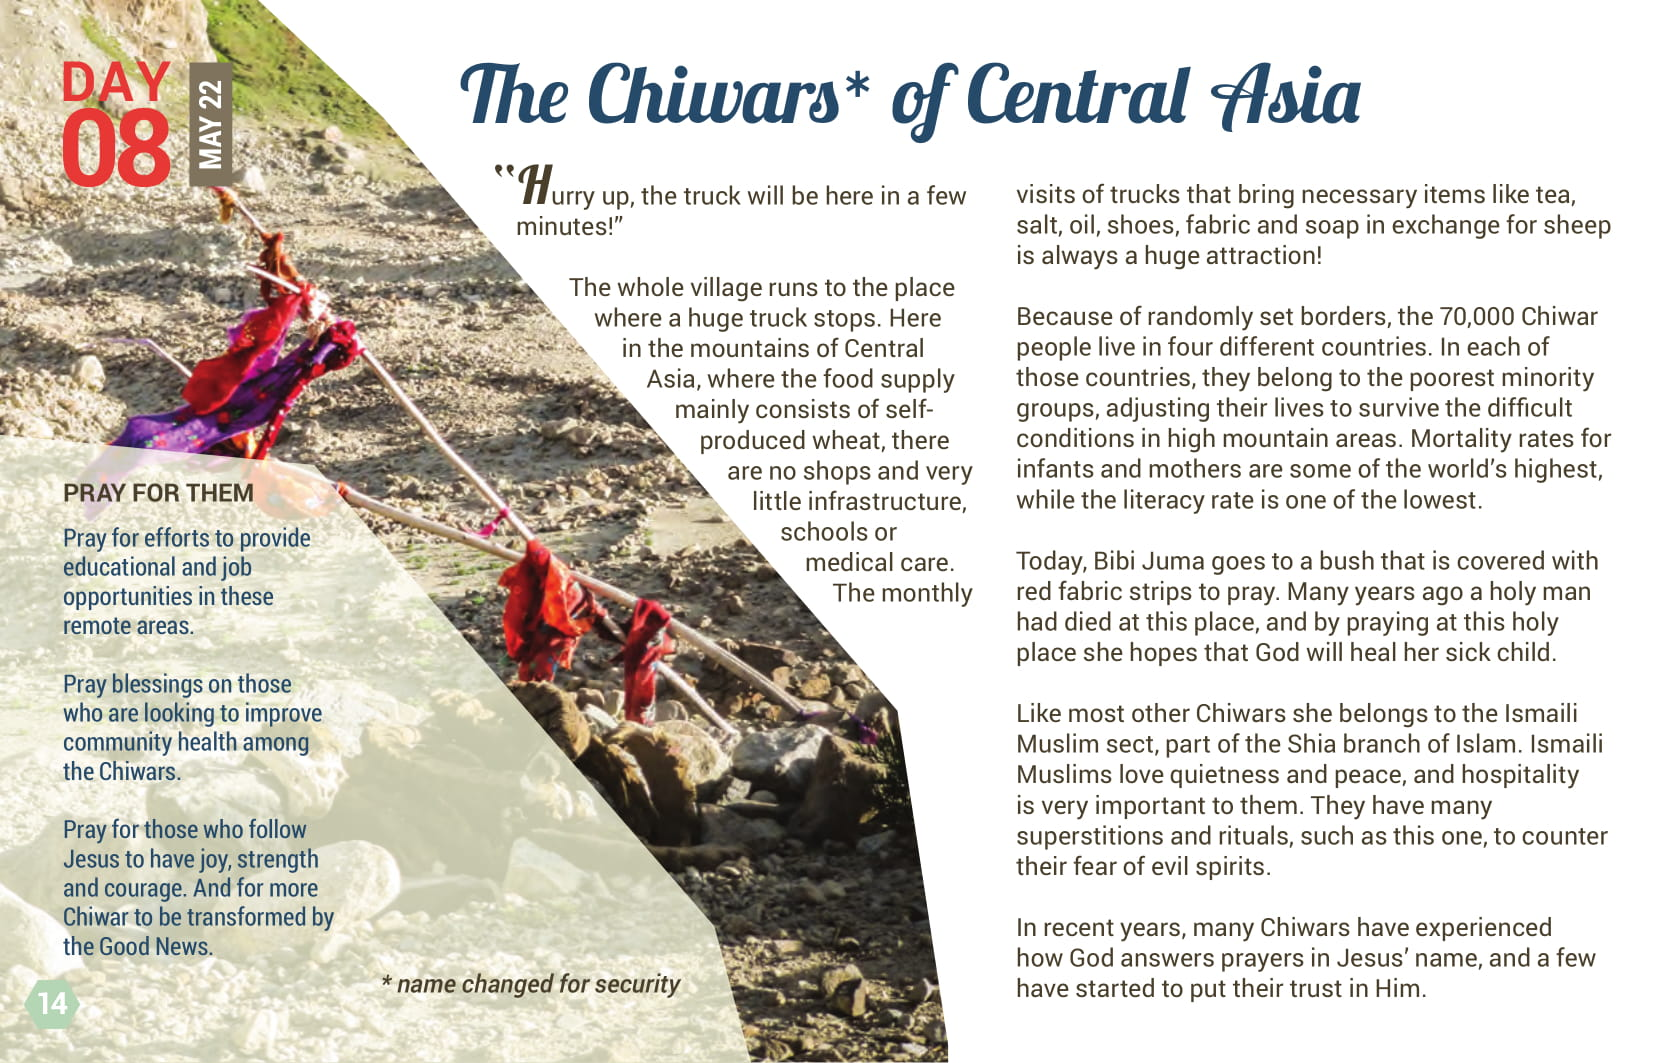 Day 08 - The Chiwars of Central Asia